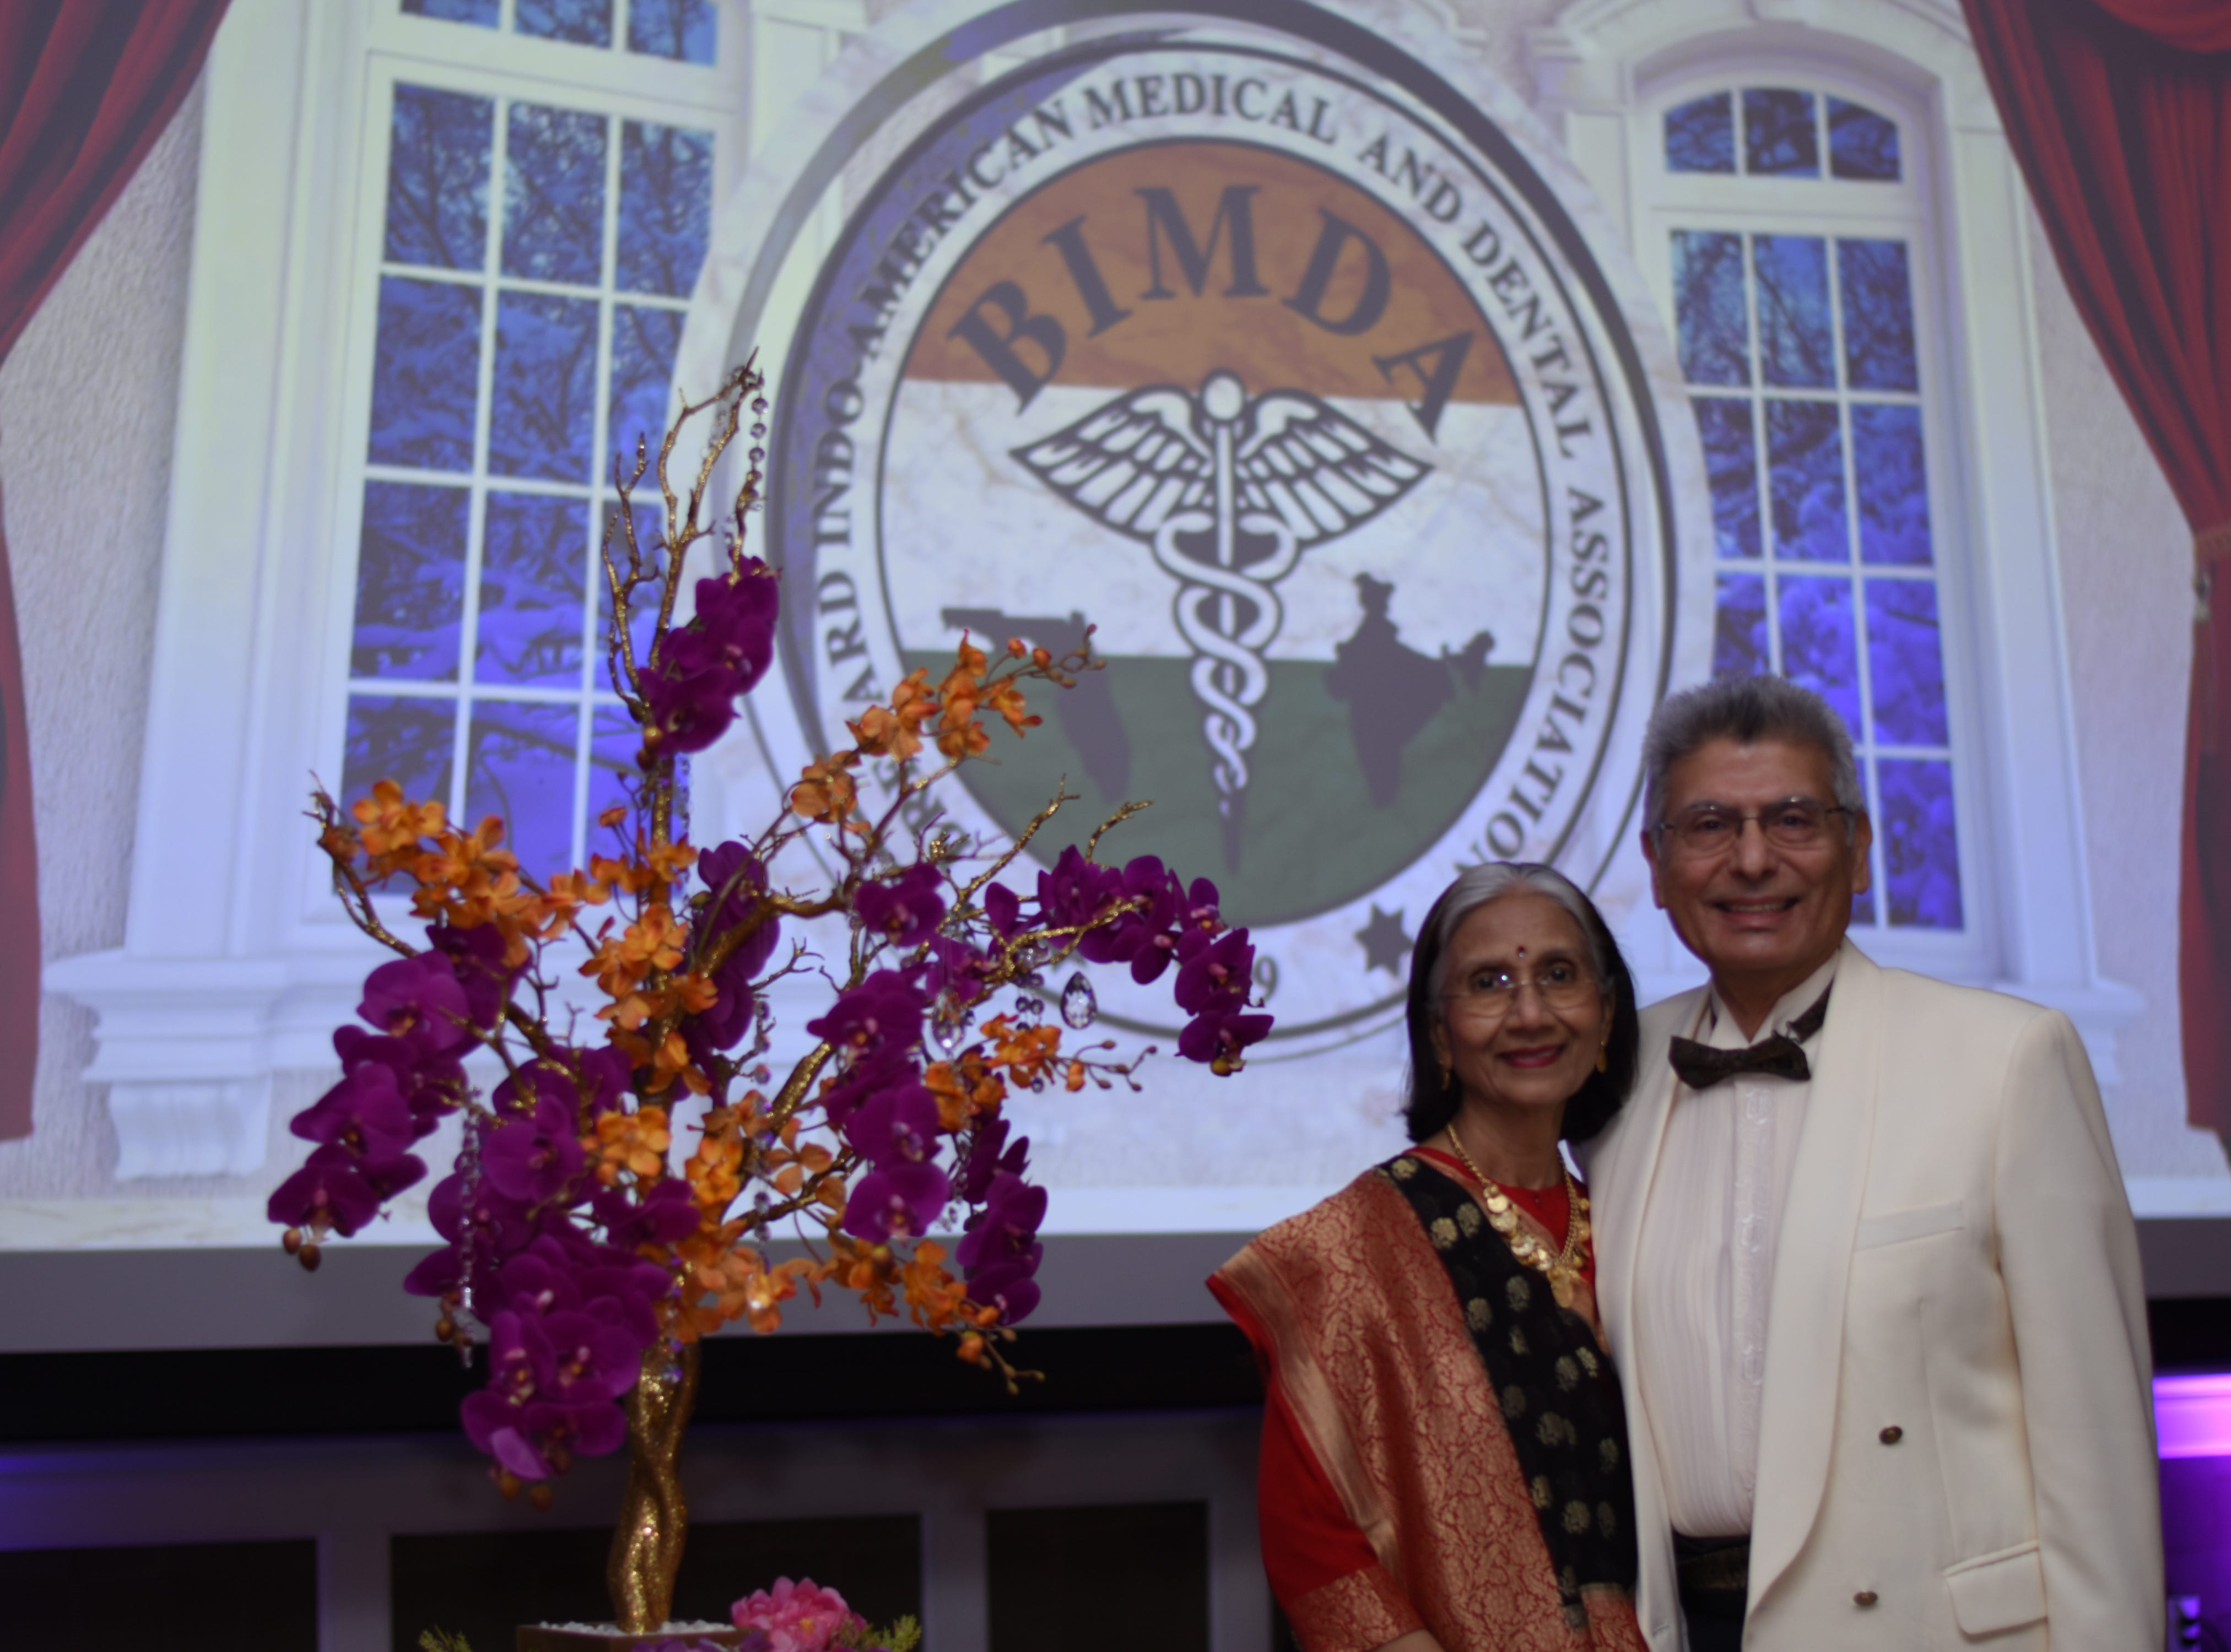 Drs. Mr. and Ms. Pandya.